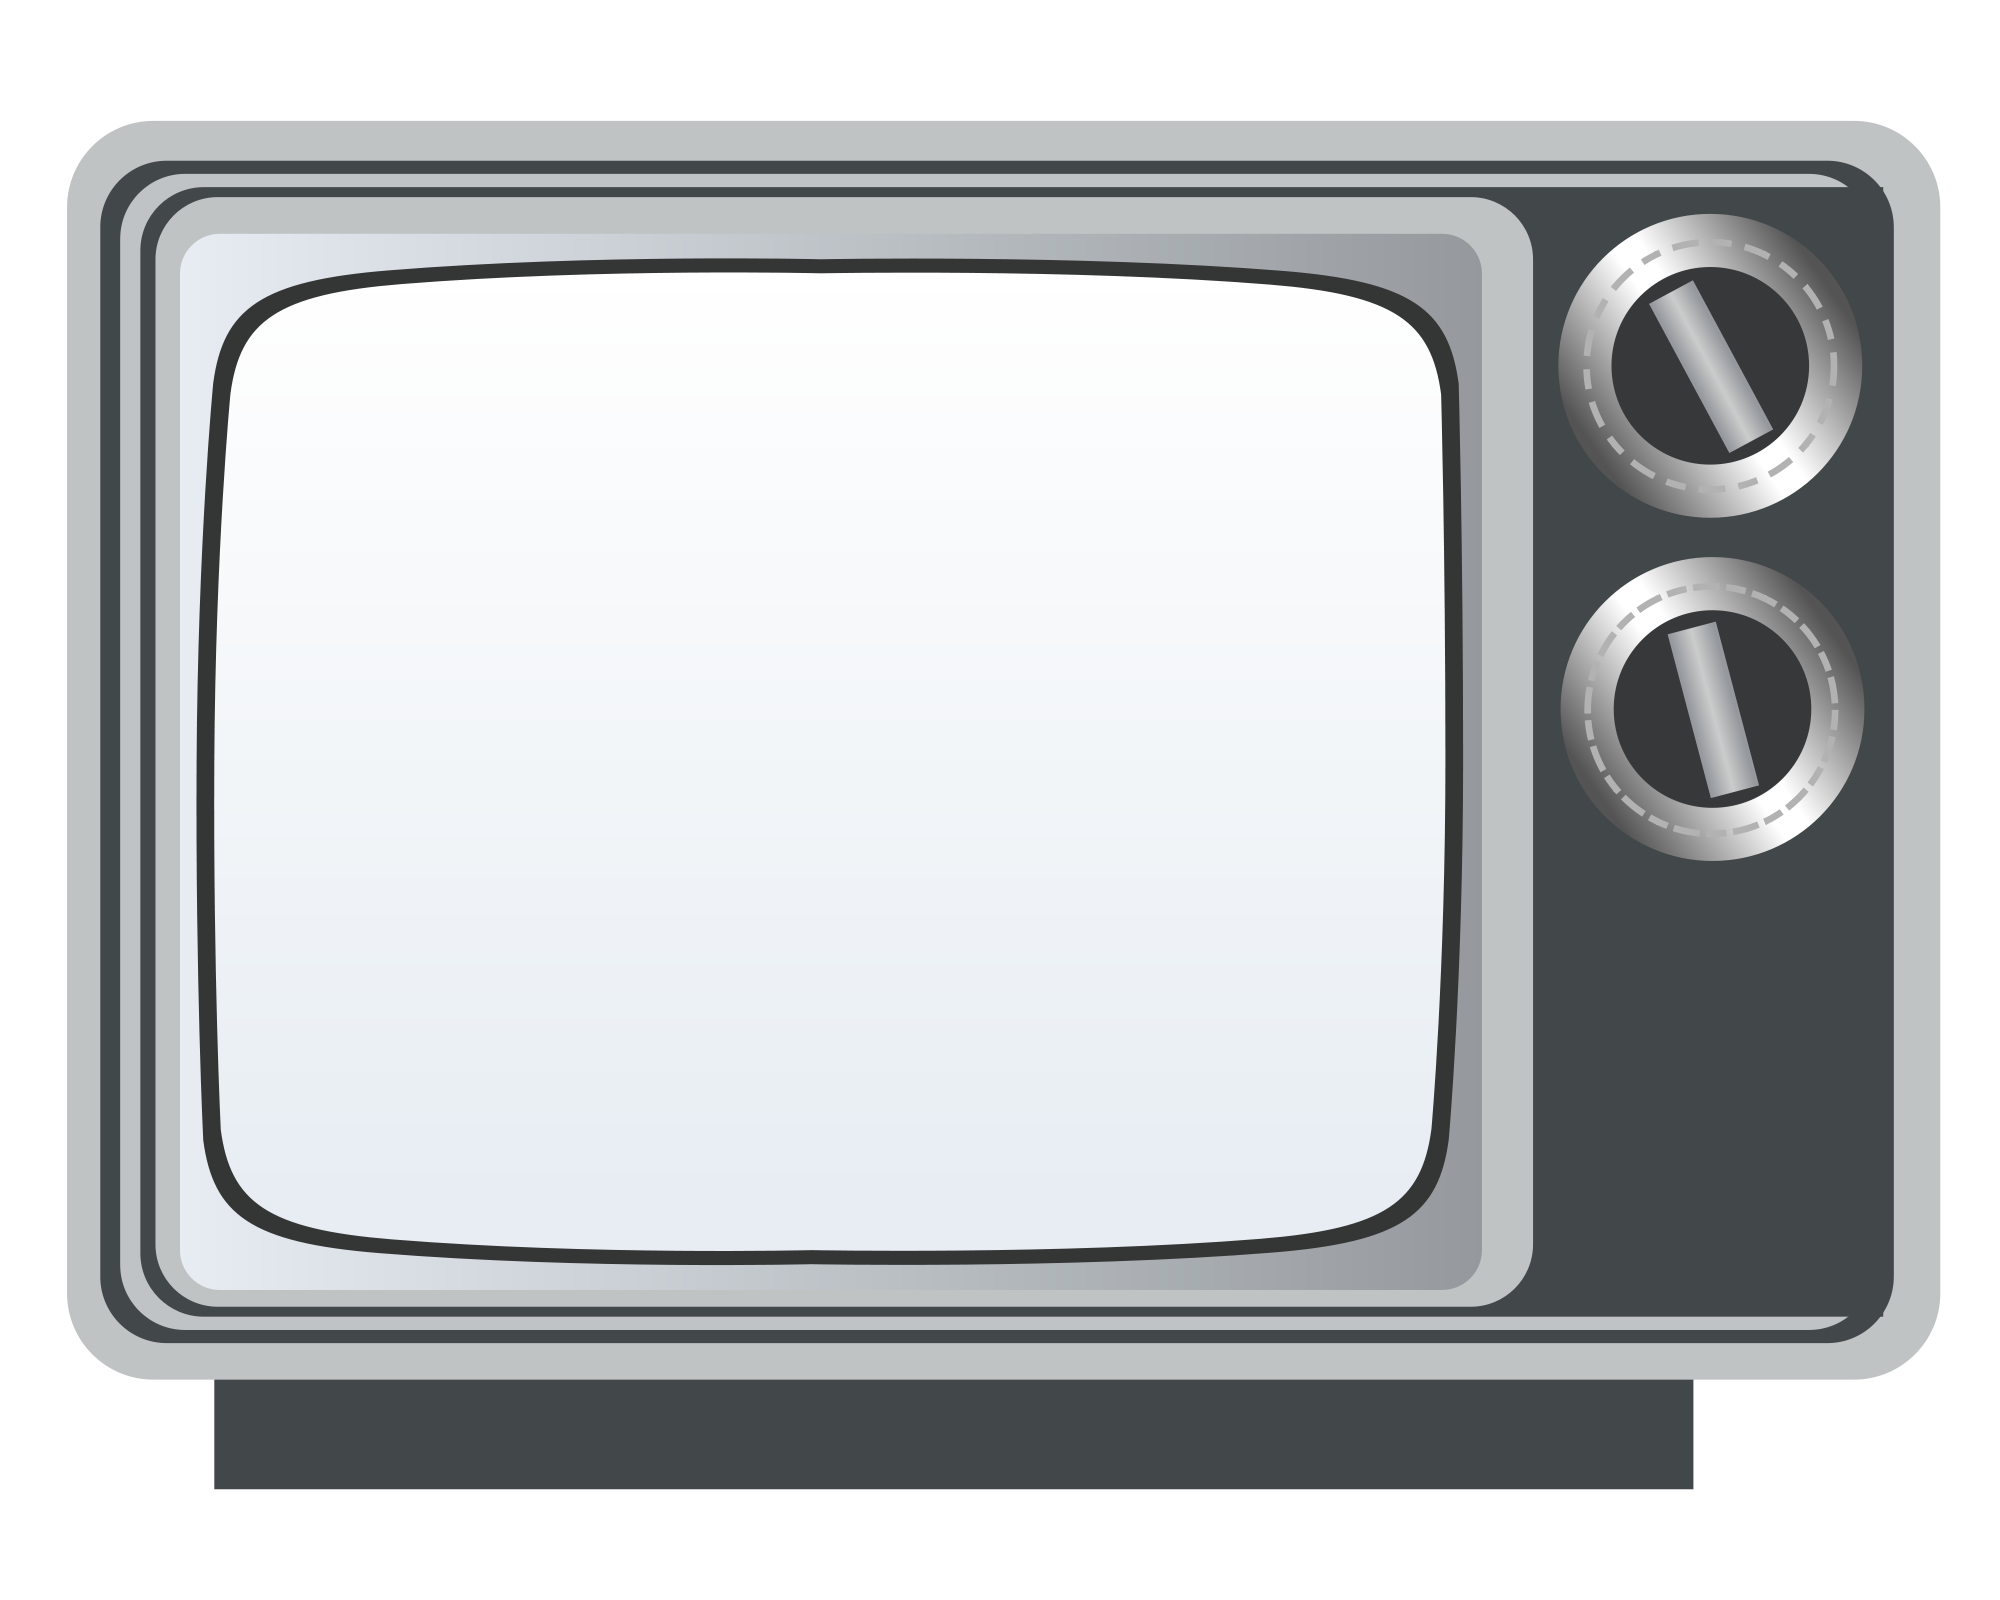 Old png image purepng. Television clipart square thing